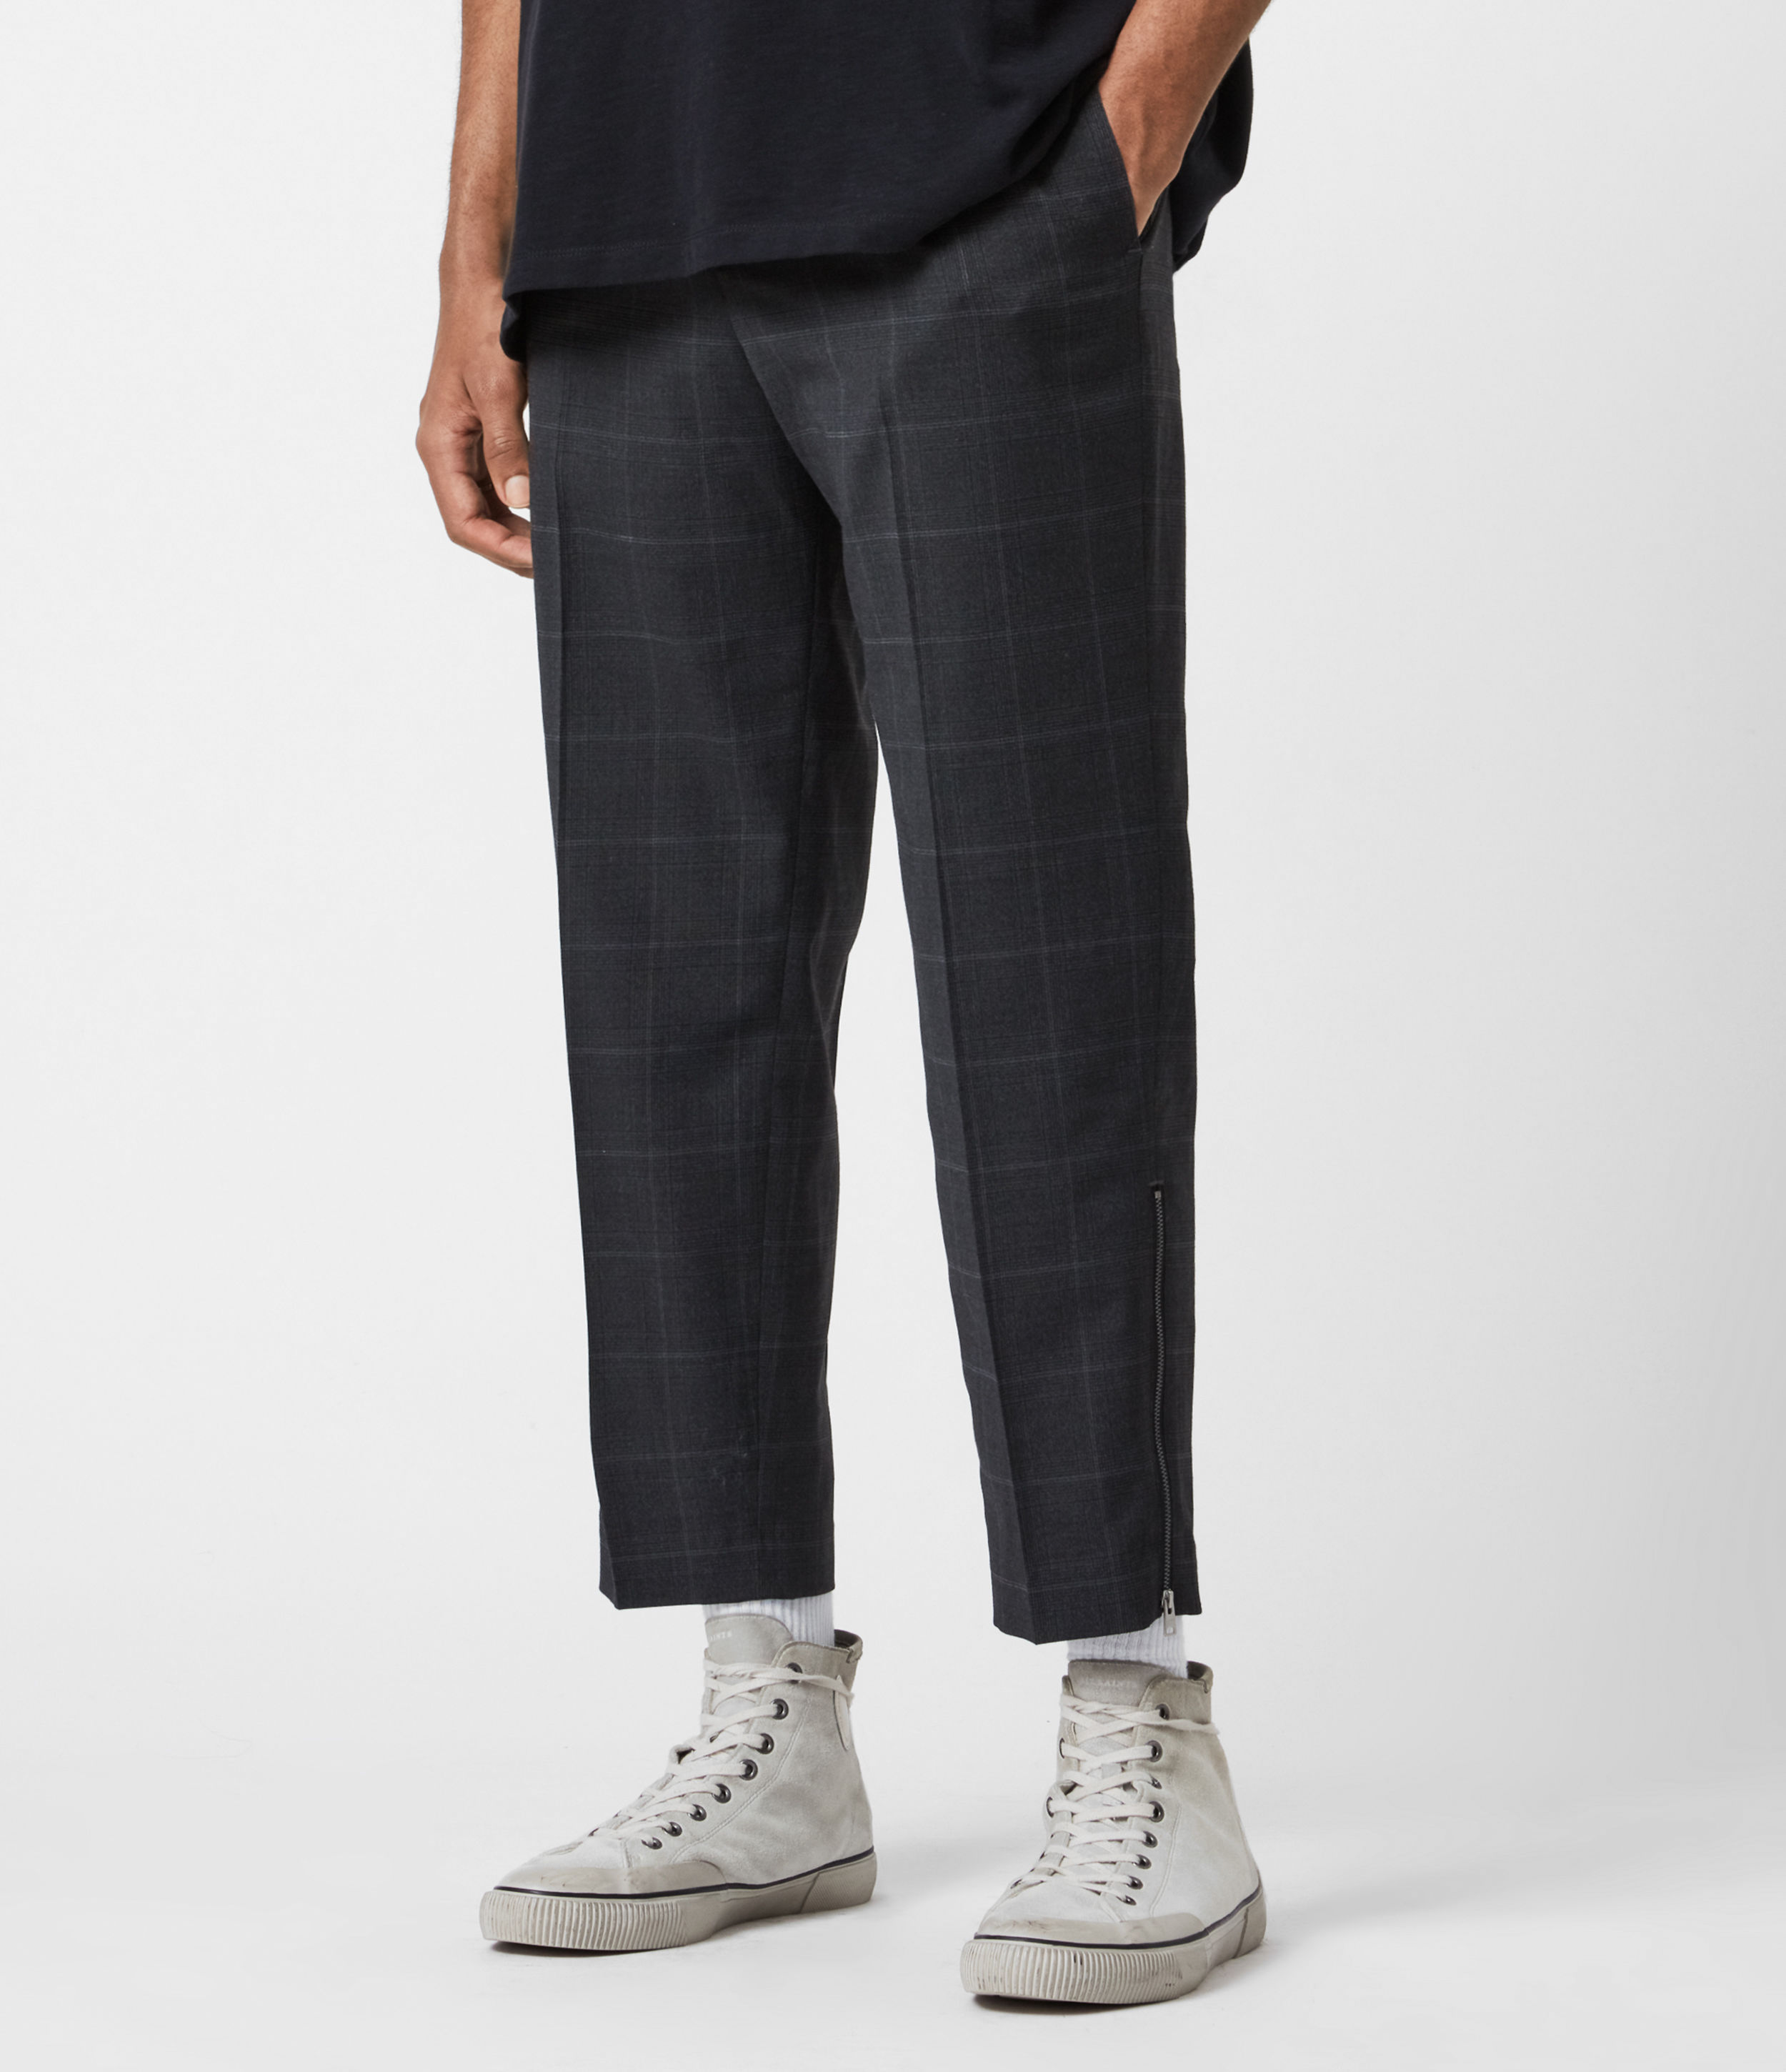 AllSaints Mens Garth Cropped Slim Trousers, Charcoal, Size: 32